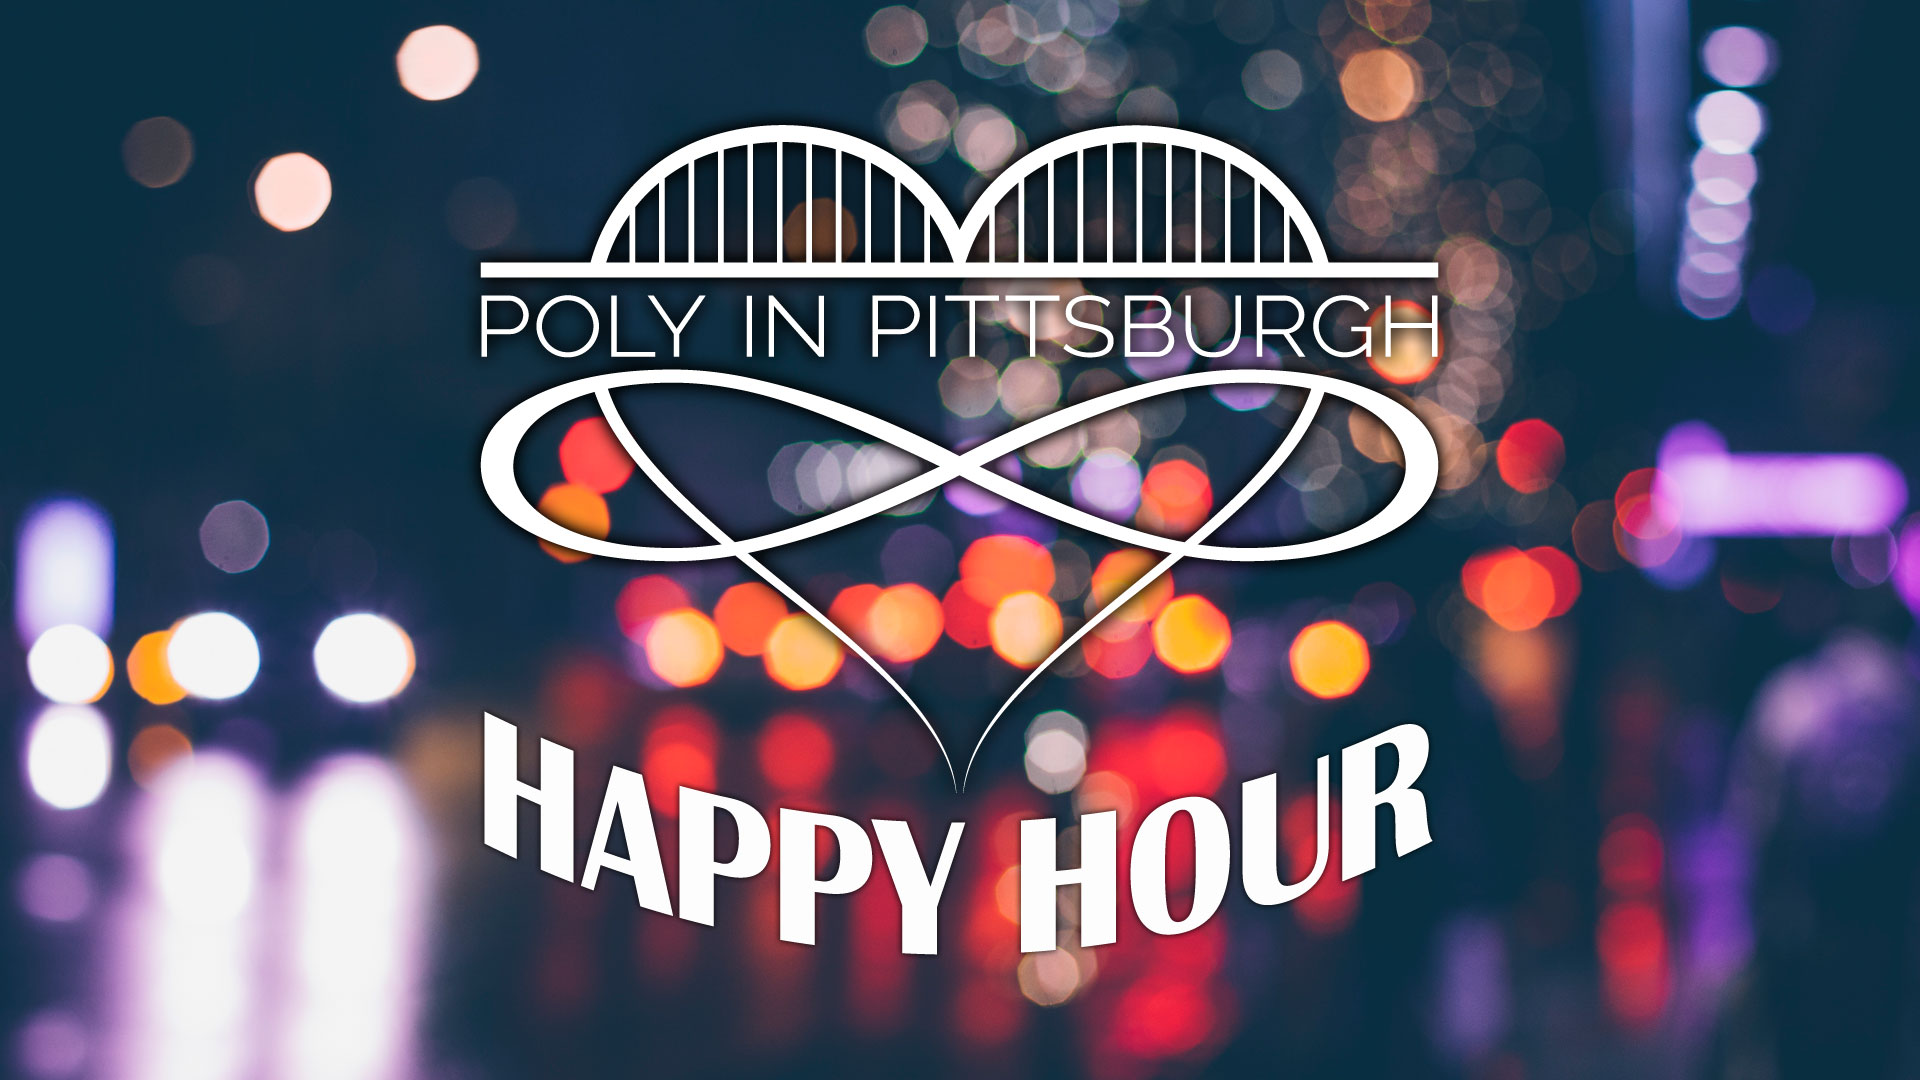 Poly in Pittsburgh Happy Hour - for polyamorous, non-monogamy, relationship anarchy